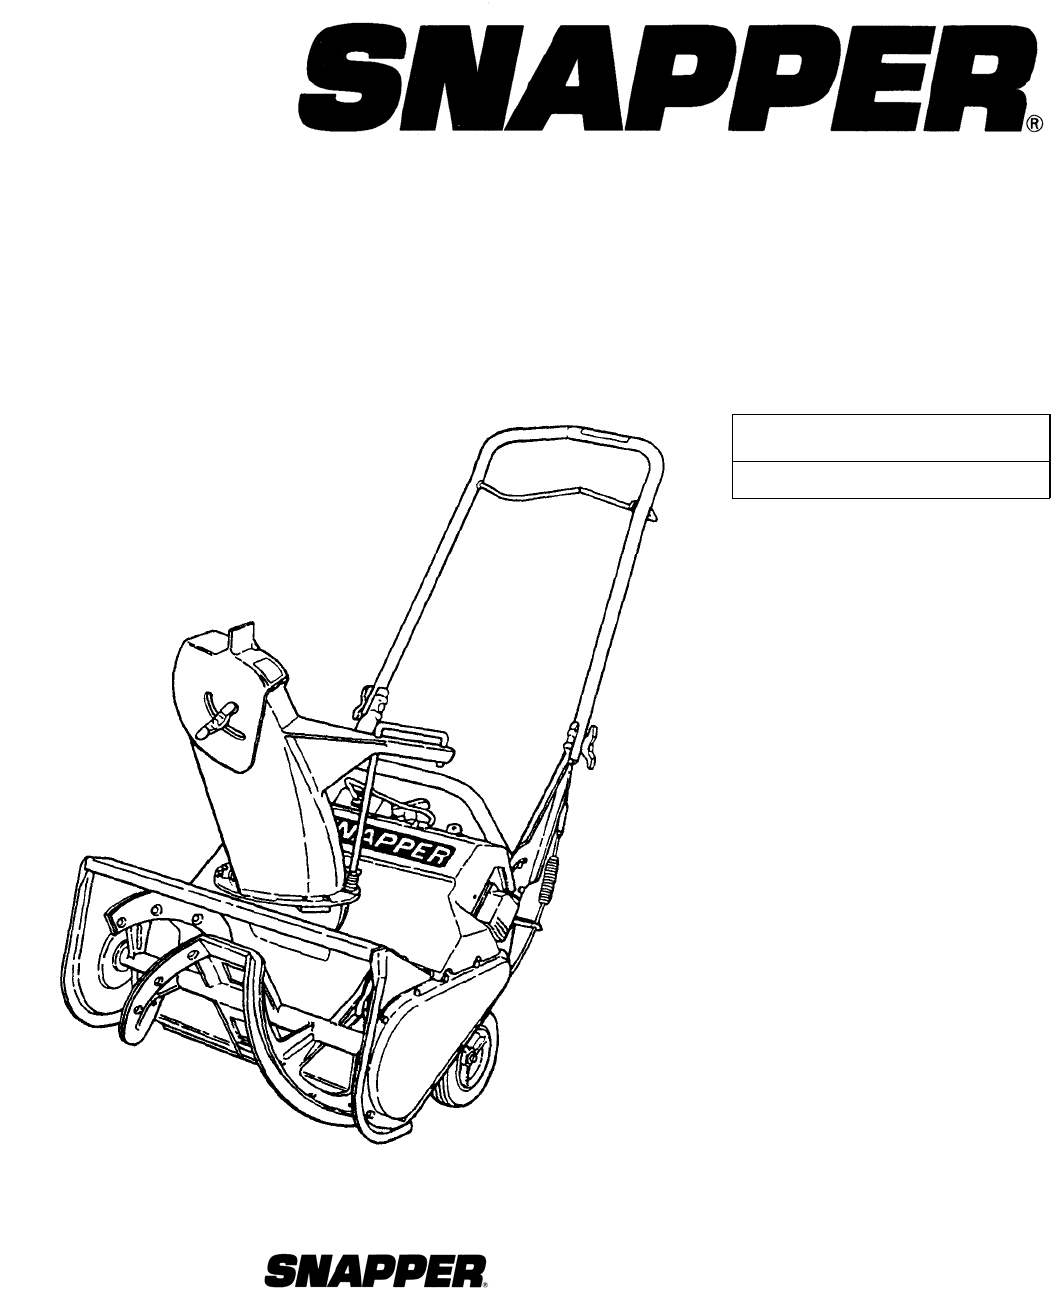 snapper snow blower c3203 user guide manualsonline com rh kitchen manualsonline com Snapper Snowblower Simplicity Snapper Snow Thrower Manual